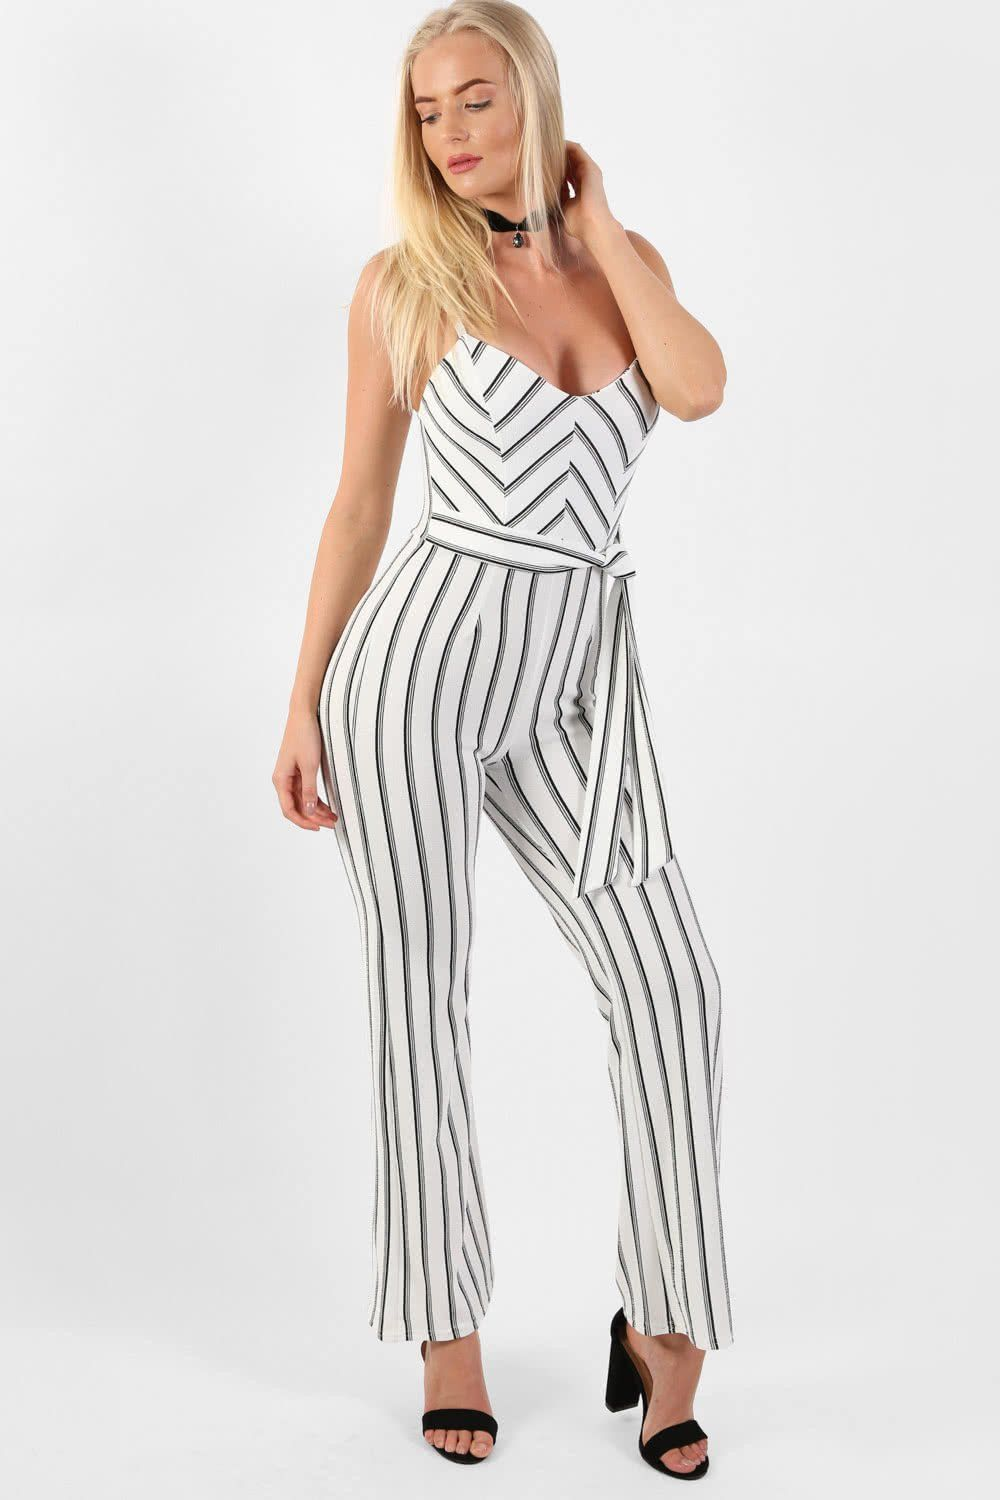 Monochrome Stripe Belted Jumpsuit in Cream 0